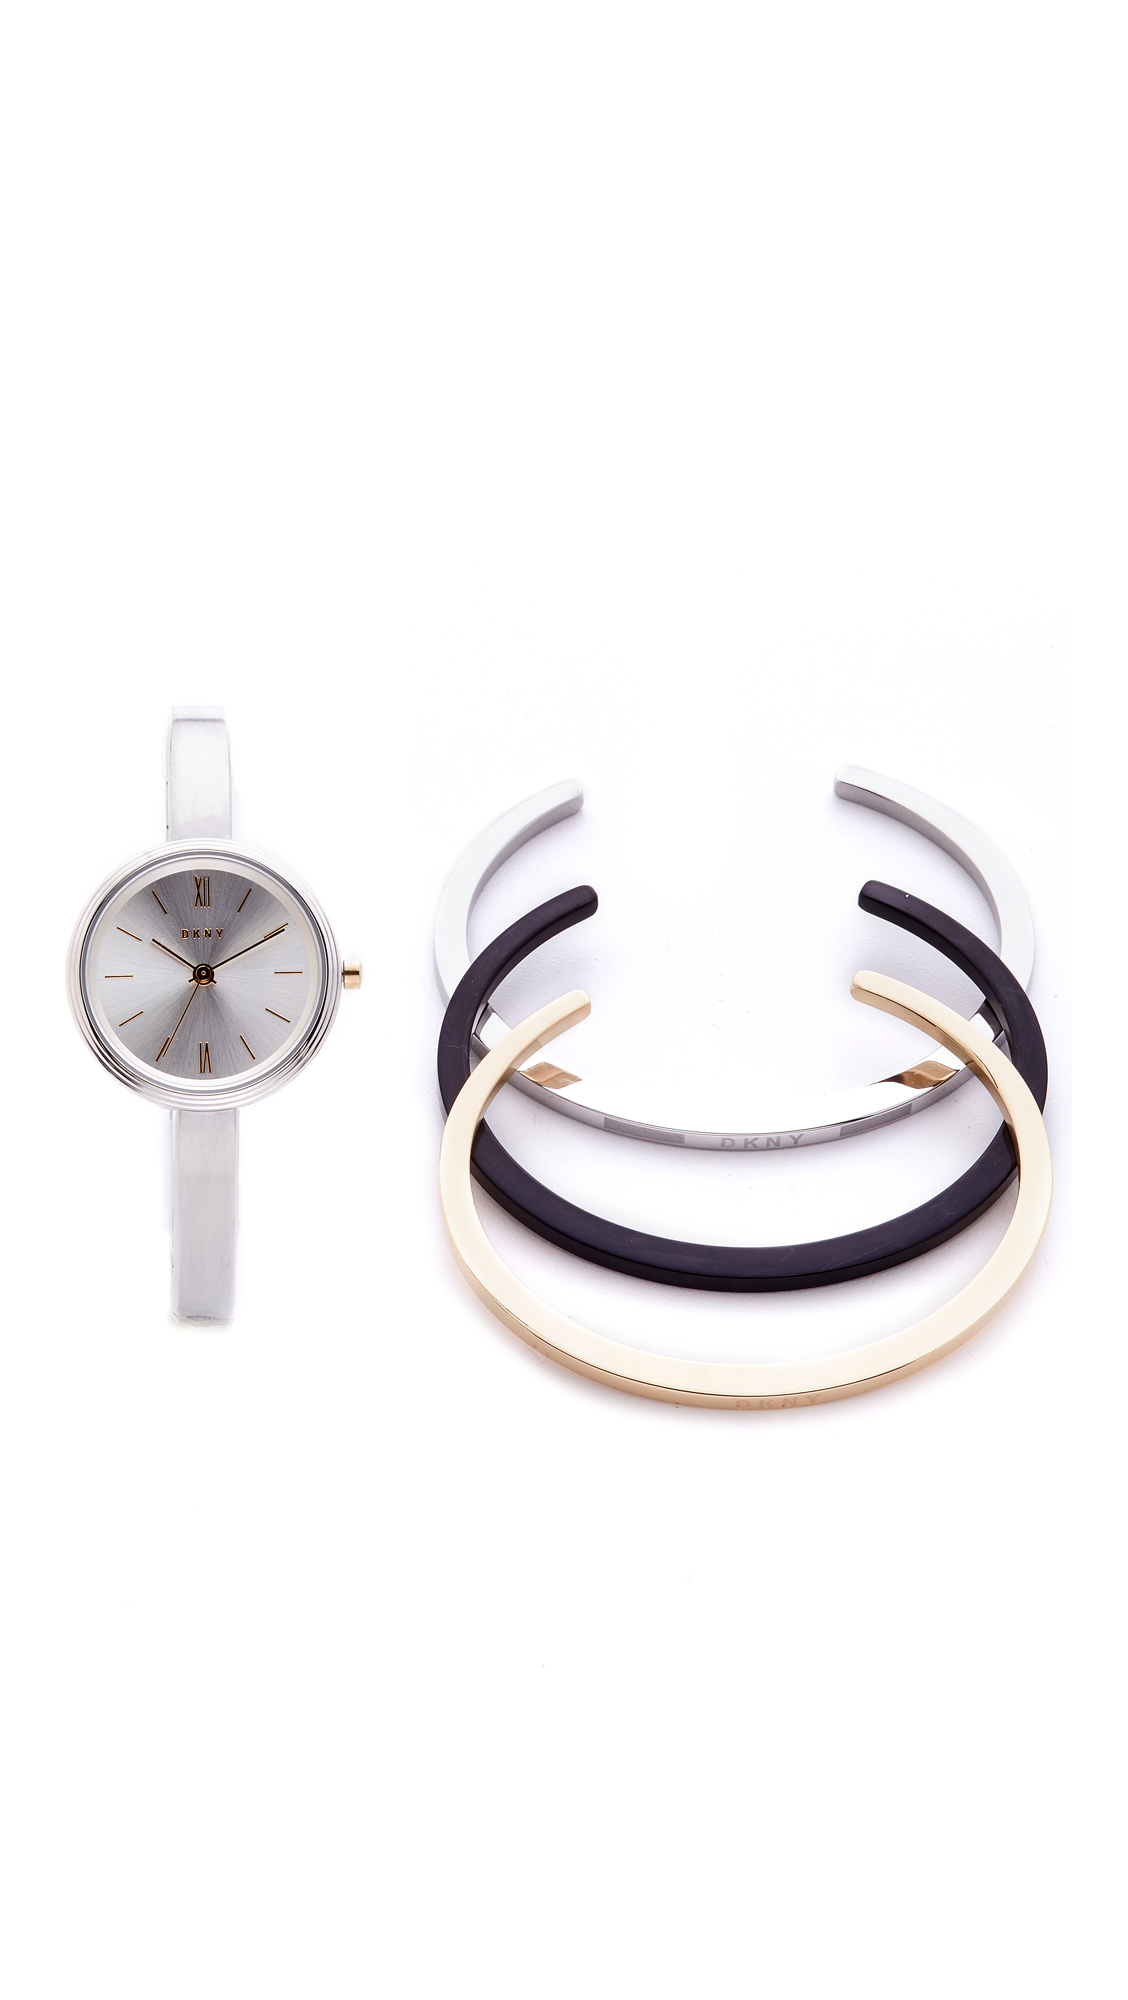 Dkny Watch & Bracelet Gift Set - Stainless Steel/Multi at Shopbop